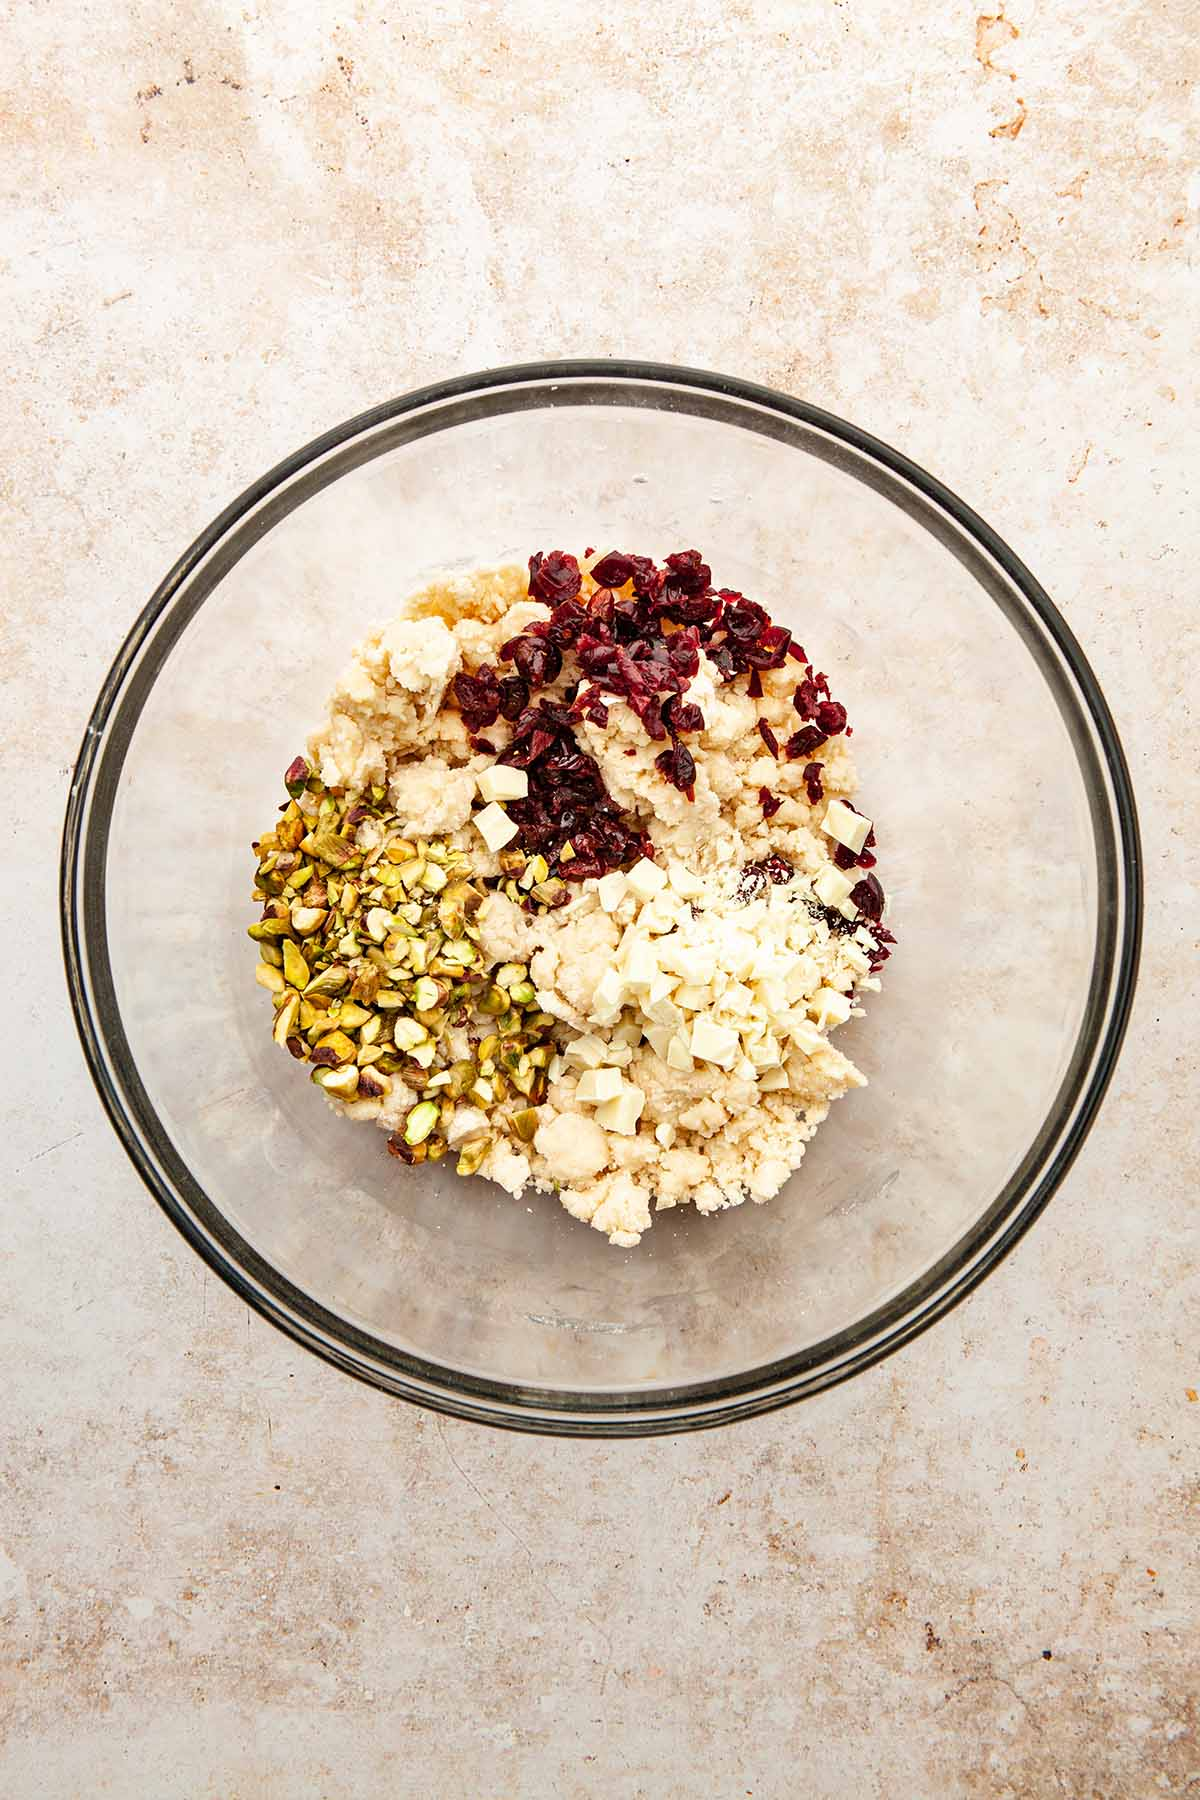 A glass bowl of cookie dough with dried cranberries, chopped white chocolate, and chopped pistachios on top about to be mixed in.